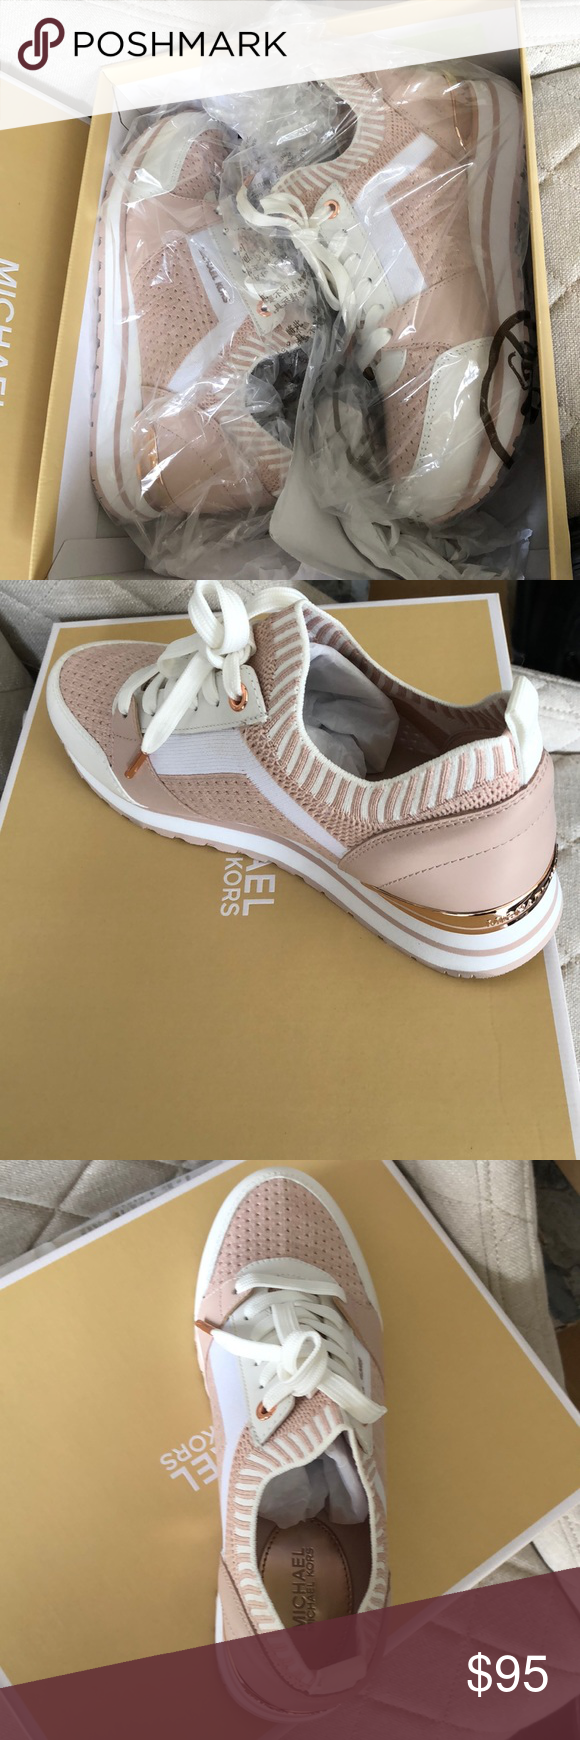 fe21f9b5c706 NIB MICHAEL KORS BILLIE TRAINERS PINK ROSE GOLD New in the box by Michael  kors. Trainers sneakers in soft pink with rose gold hardware. Michael Kors  Shoes ...